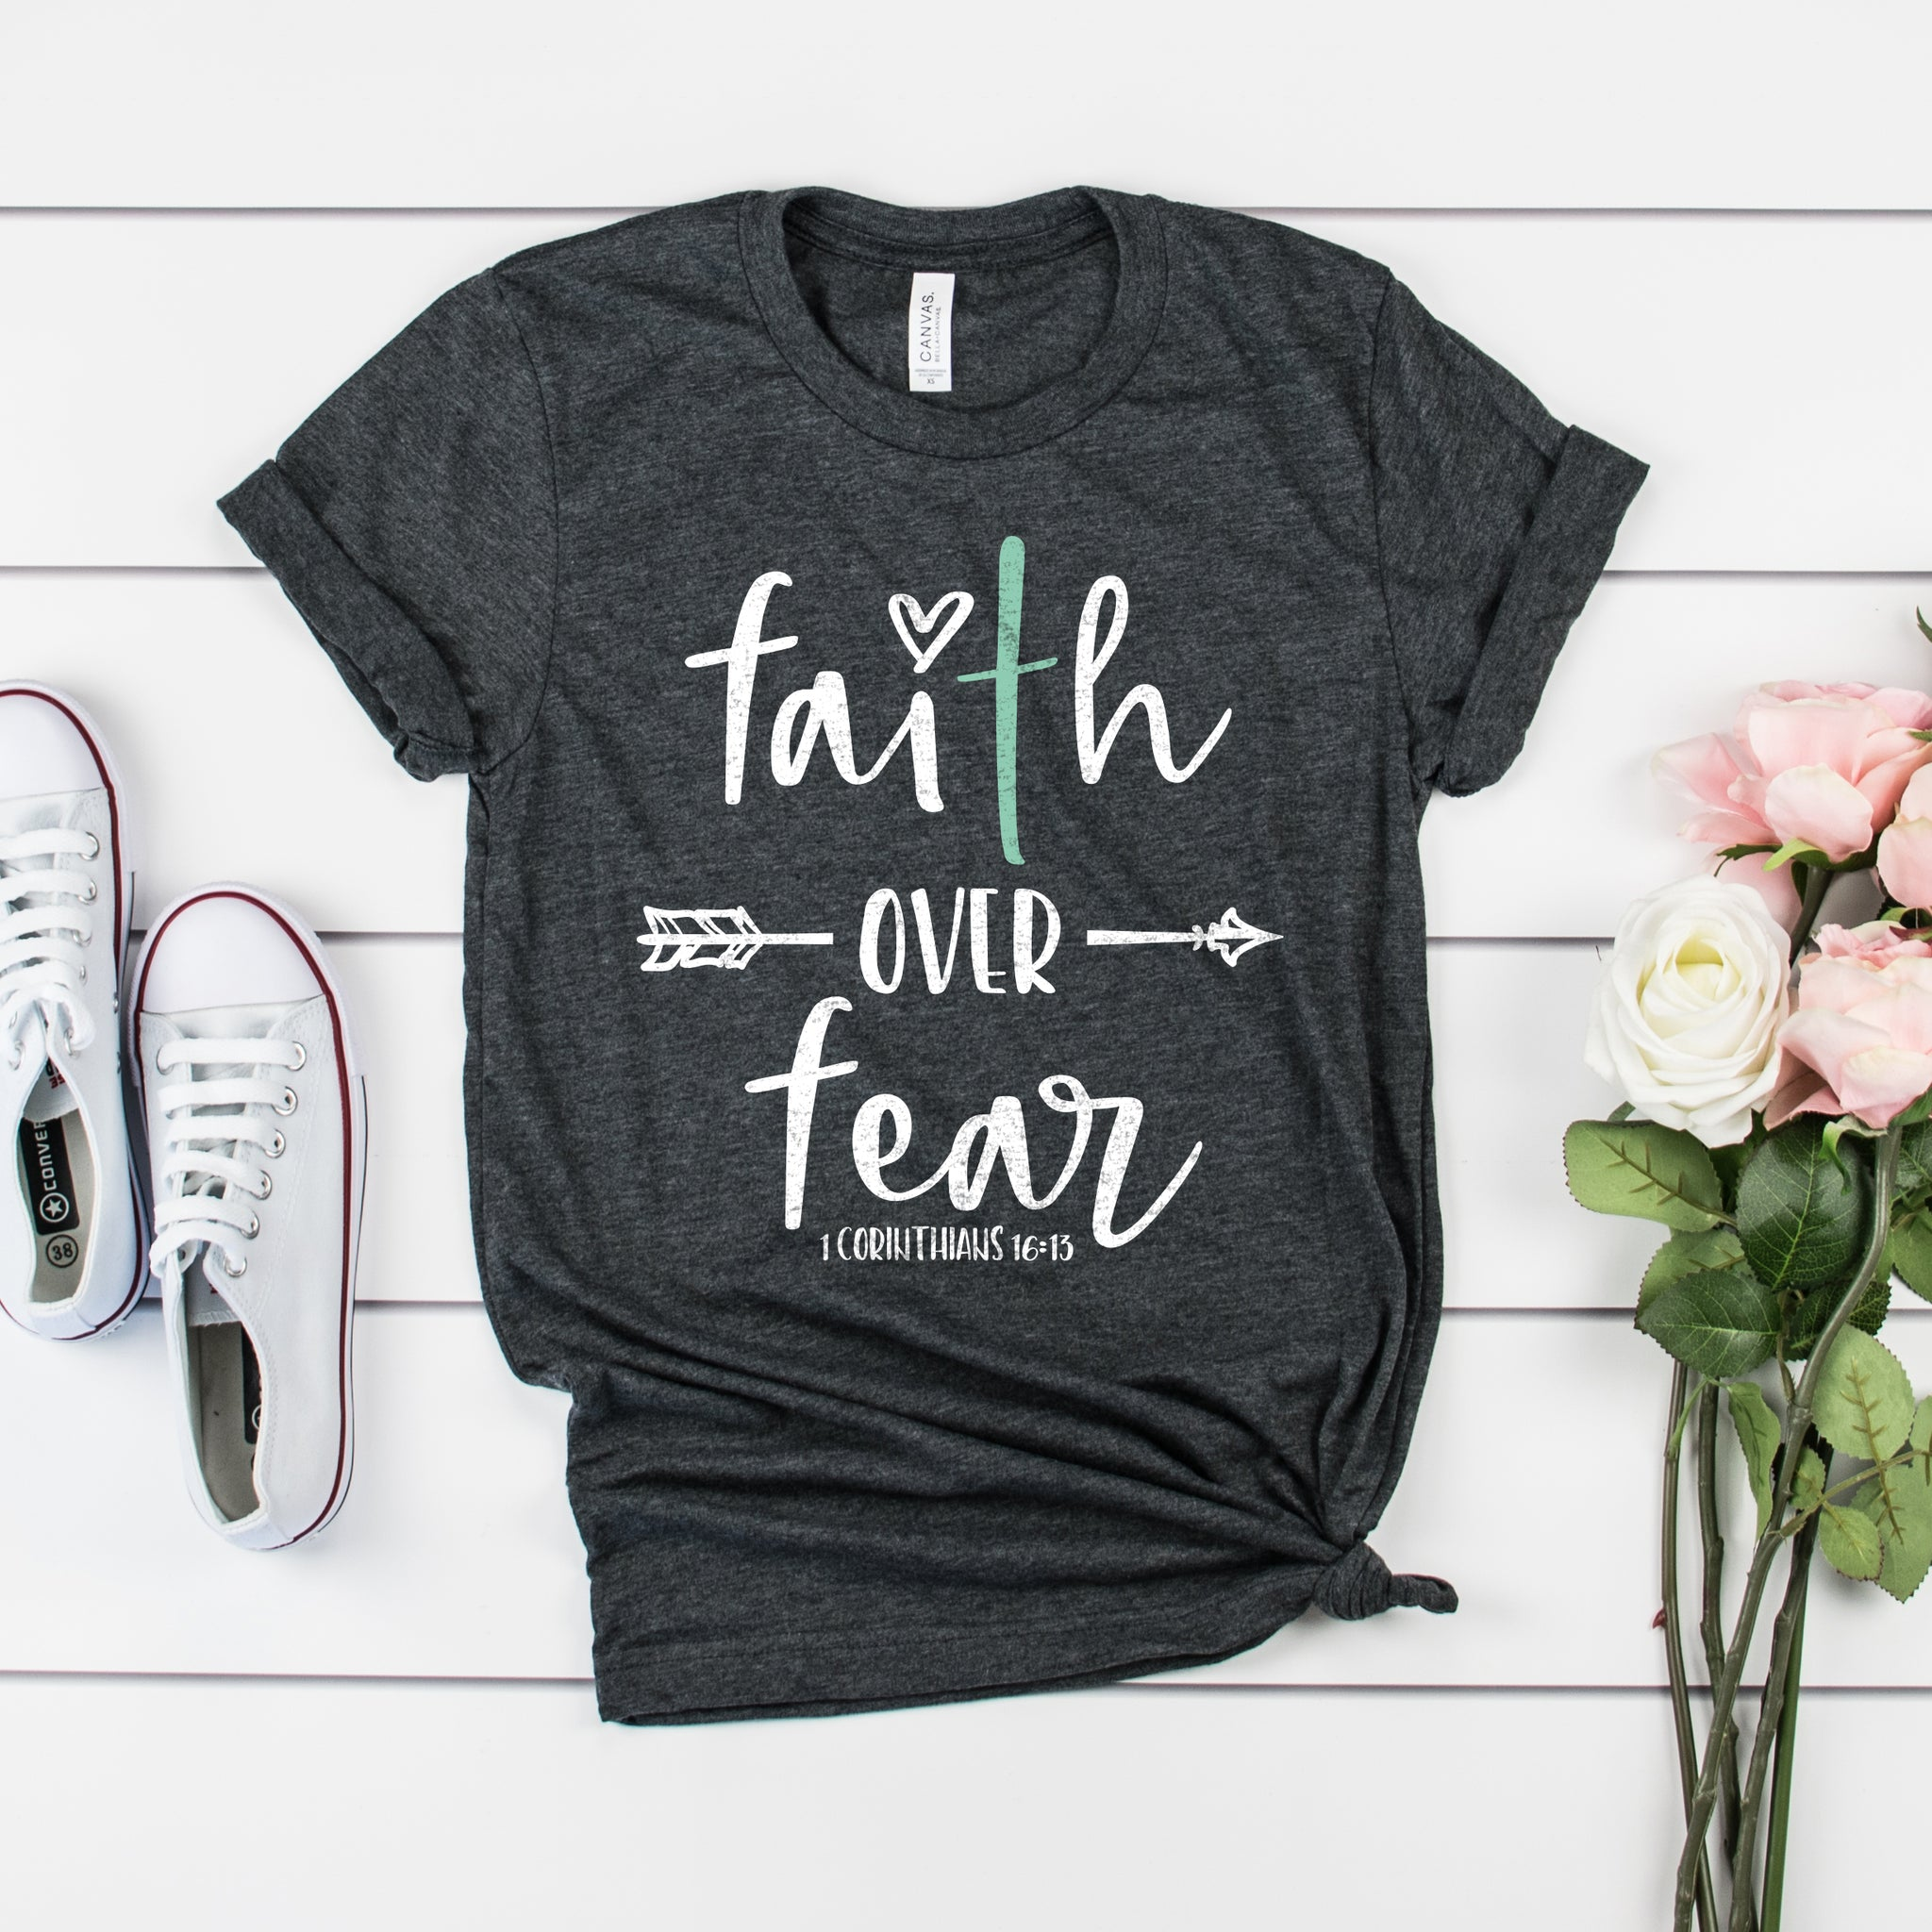 Faith Over Fear Short Sleeve Shirt - Bella Faith - Christian Shirts for Women - Women's Faith Based Apparel - Christian Clothing for Women - Christian Jewelry and Gifts for Women - Trendy Christian Tees